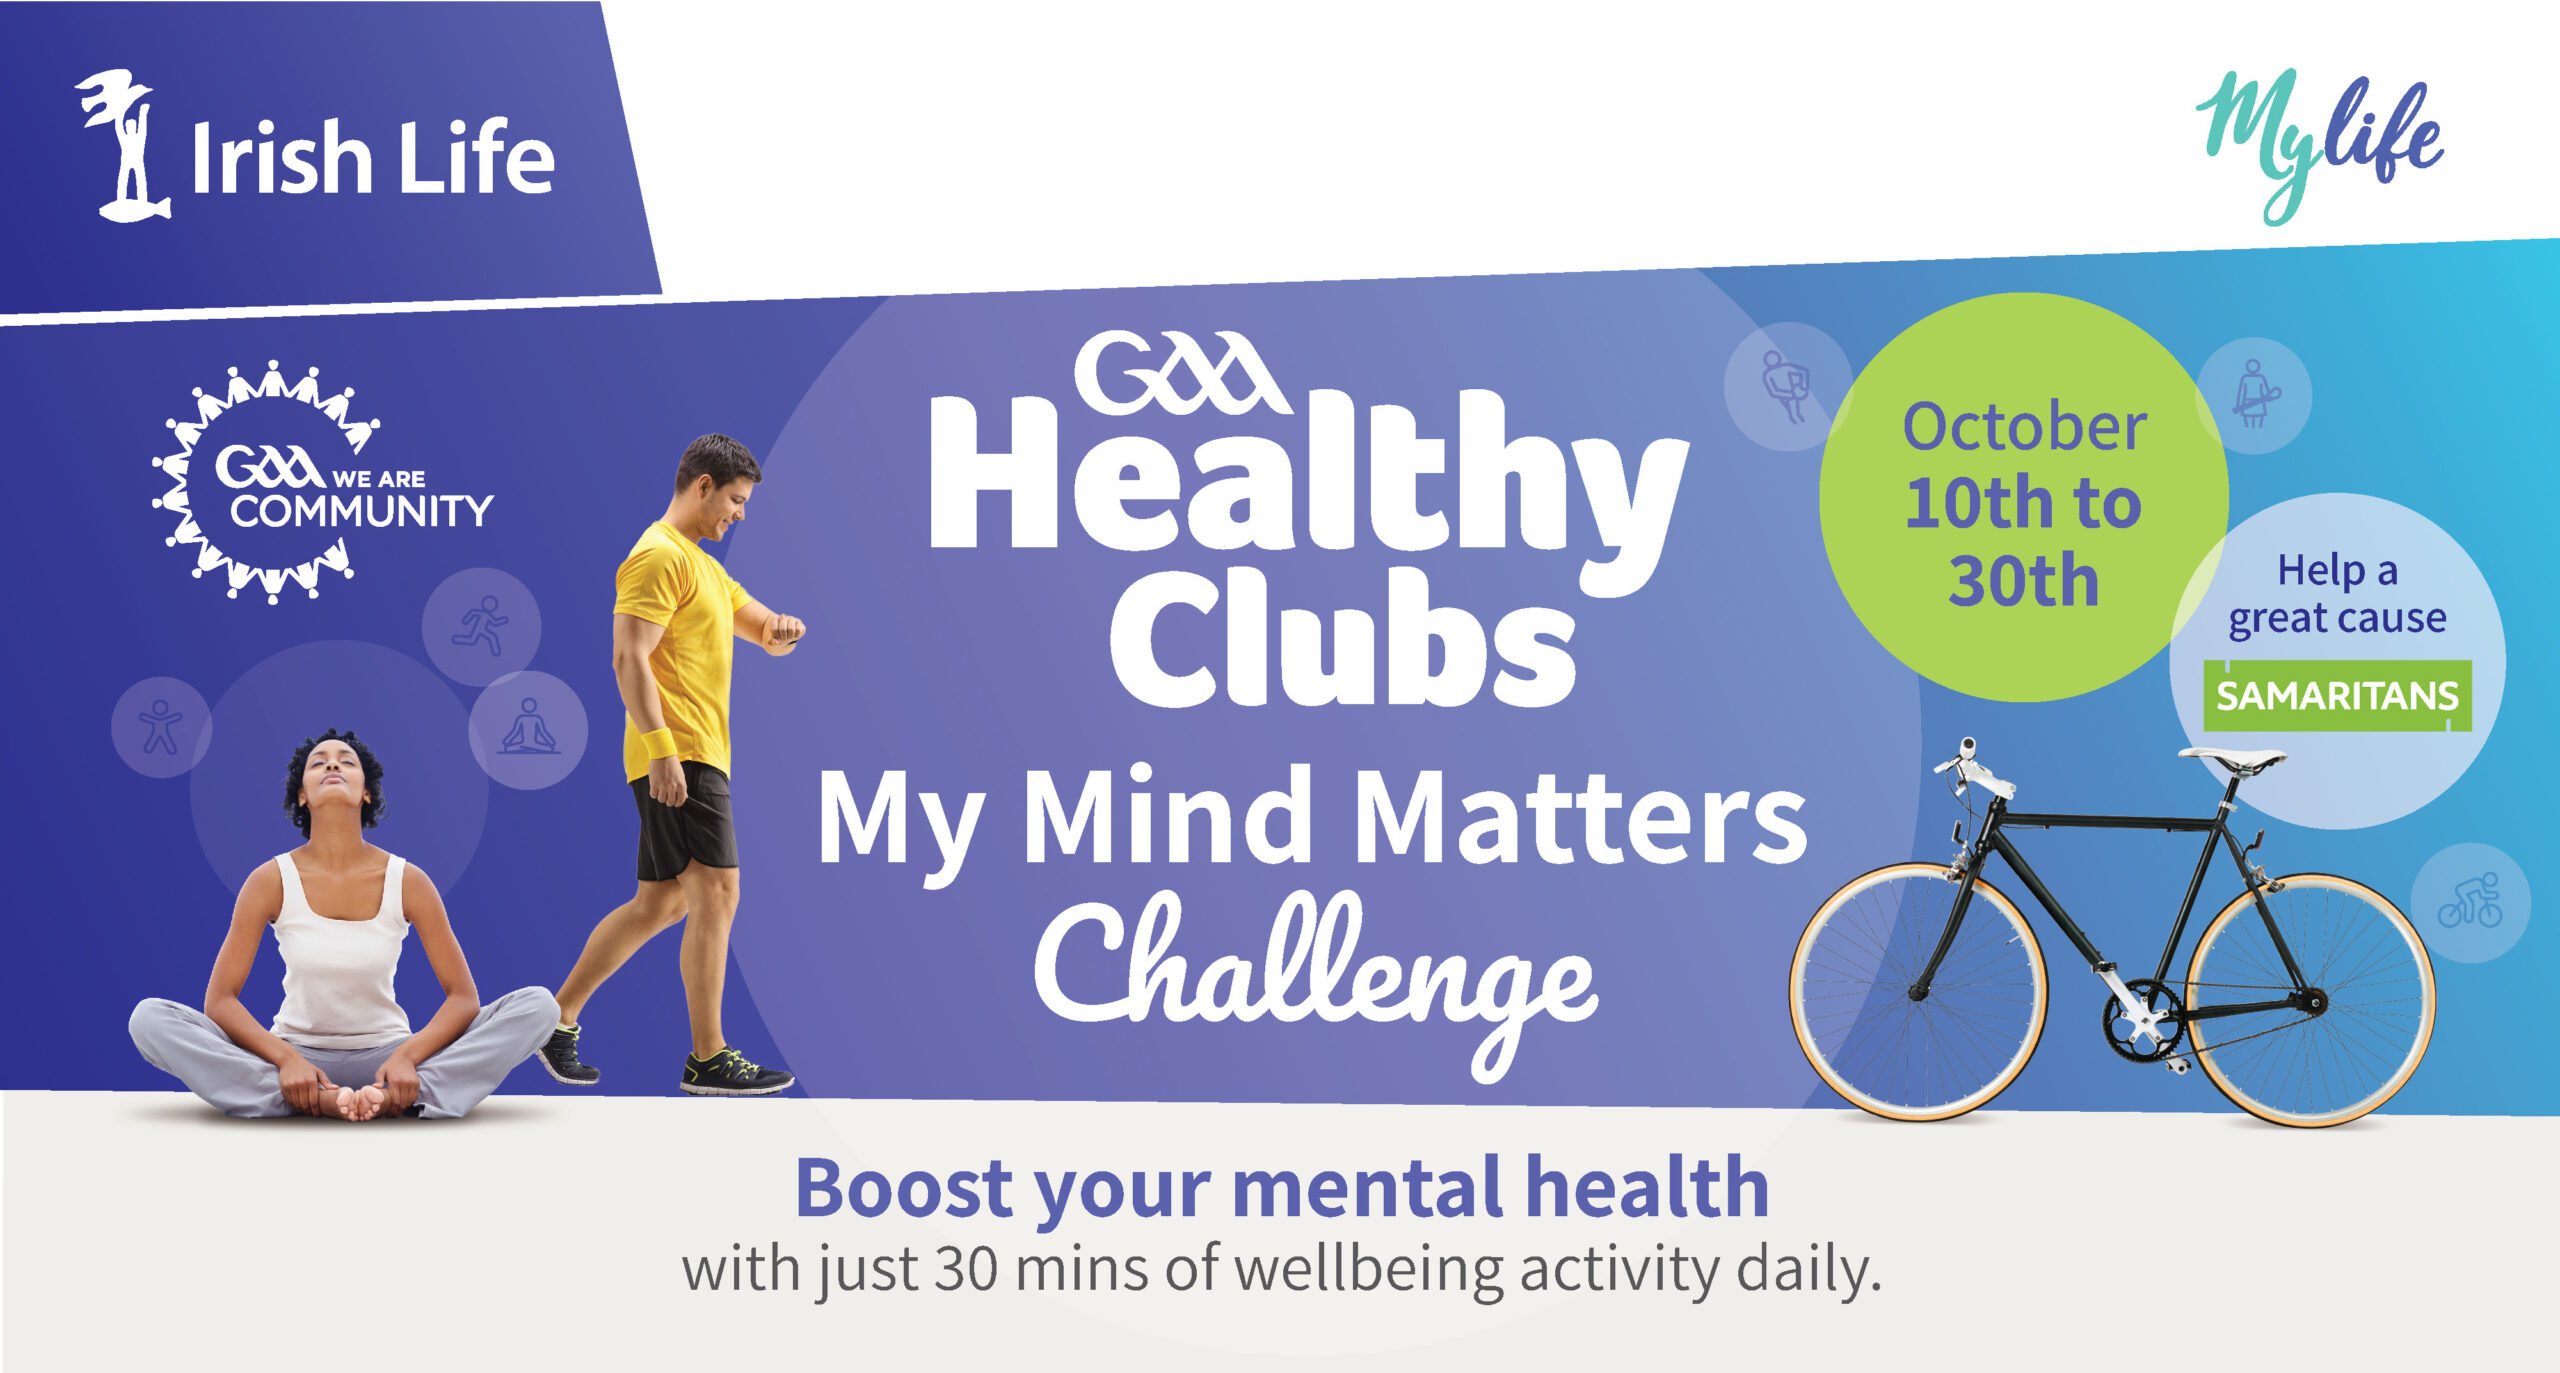 GAA Healthy Clubs My Mind Matters Challenge in partnership with Irish Life